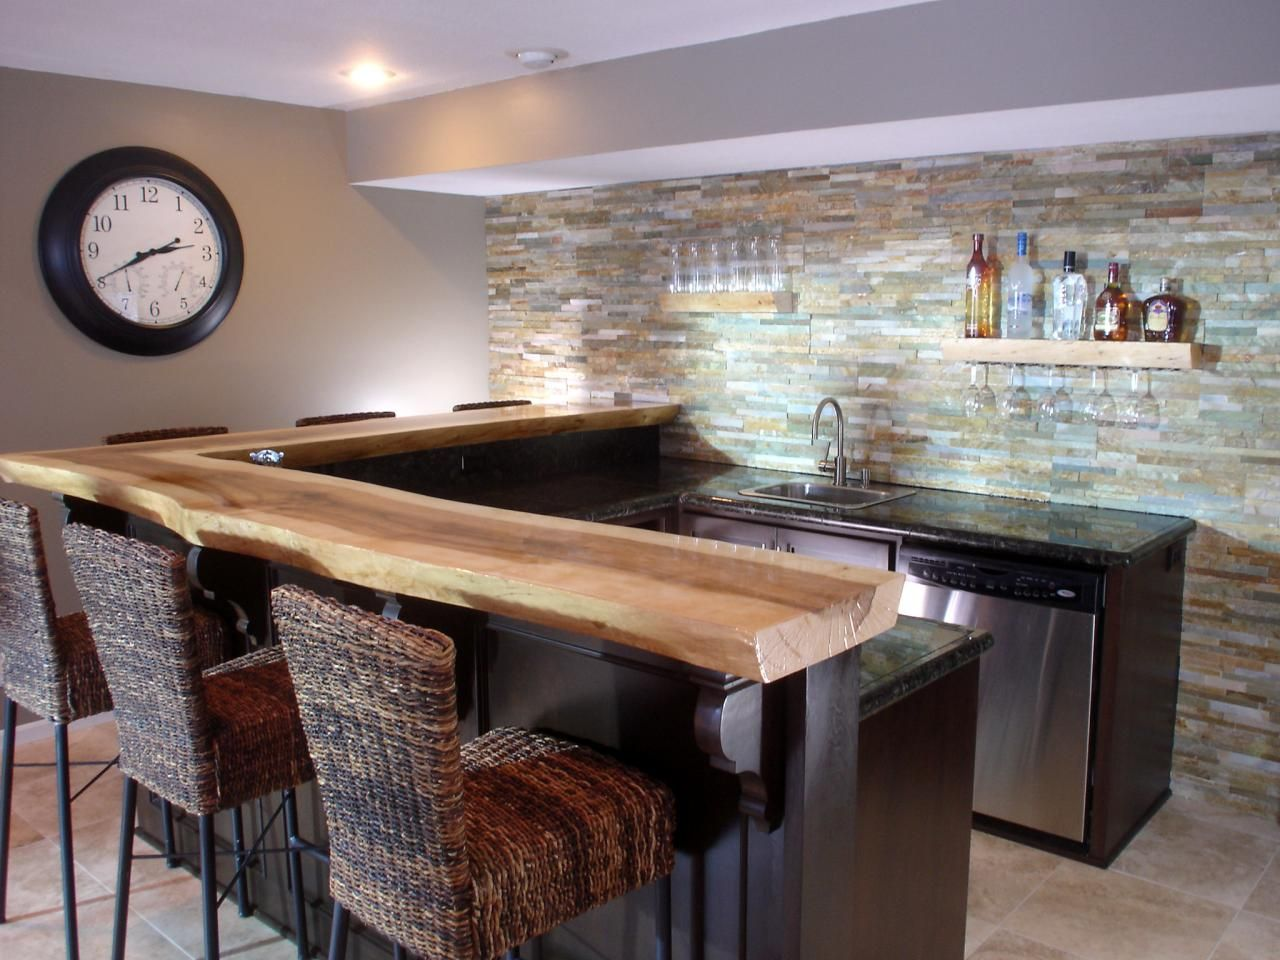 Home Bar Ideas: 89 Design Options | Pinterest | Bar designs ...